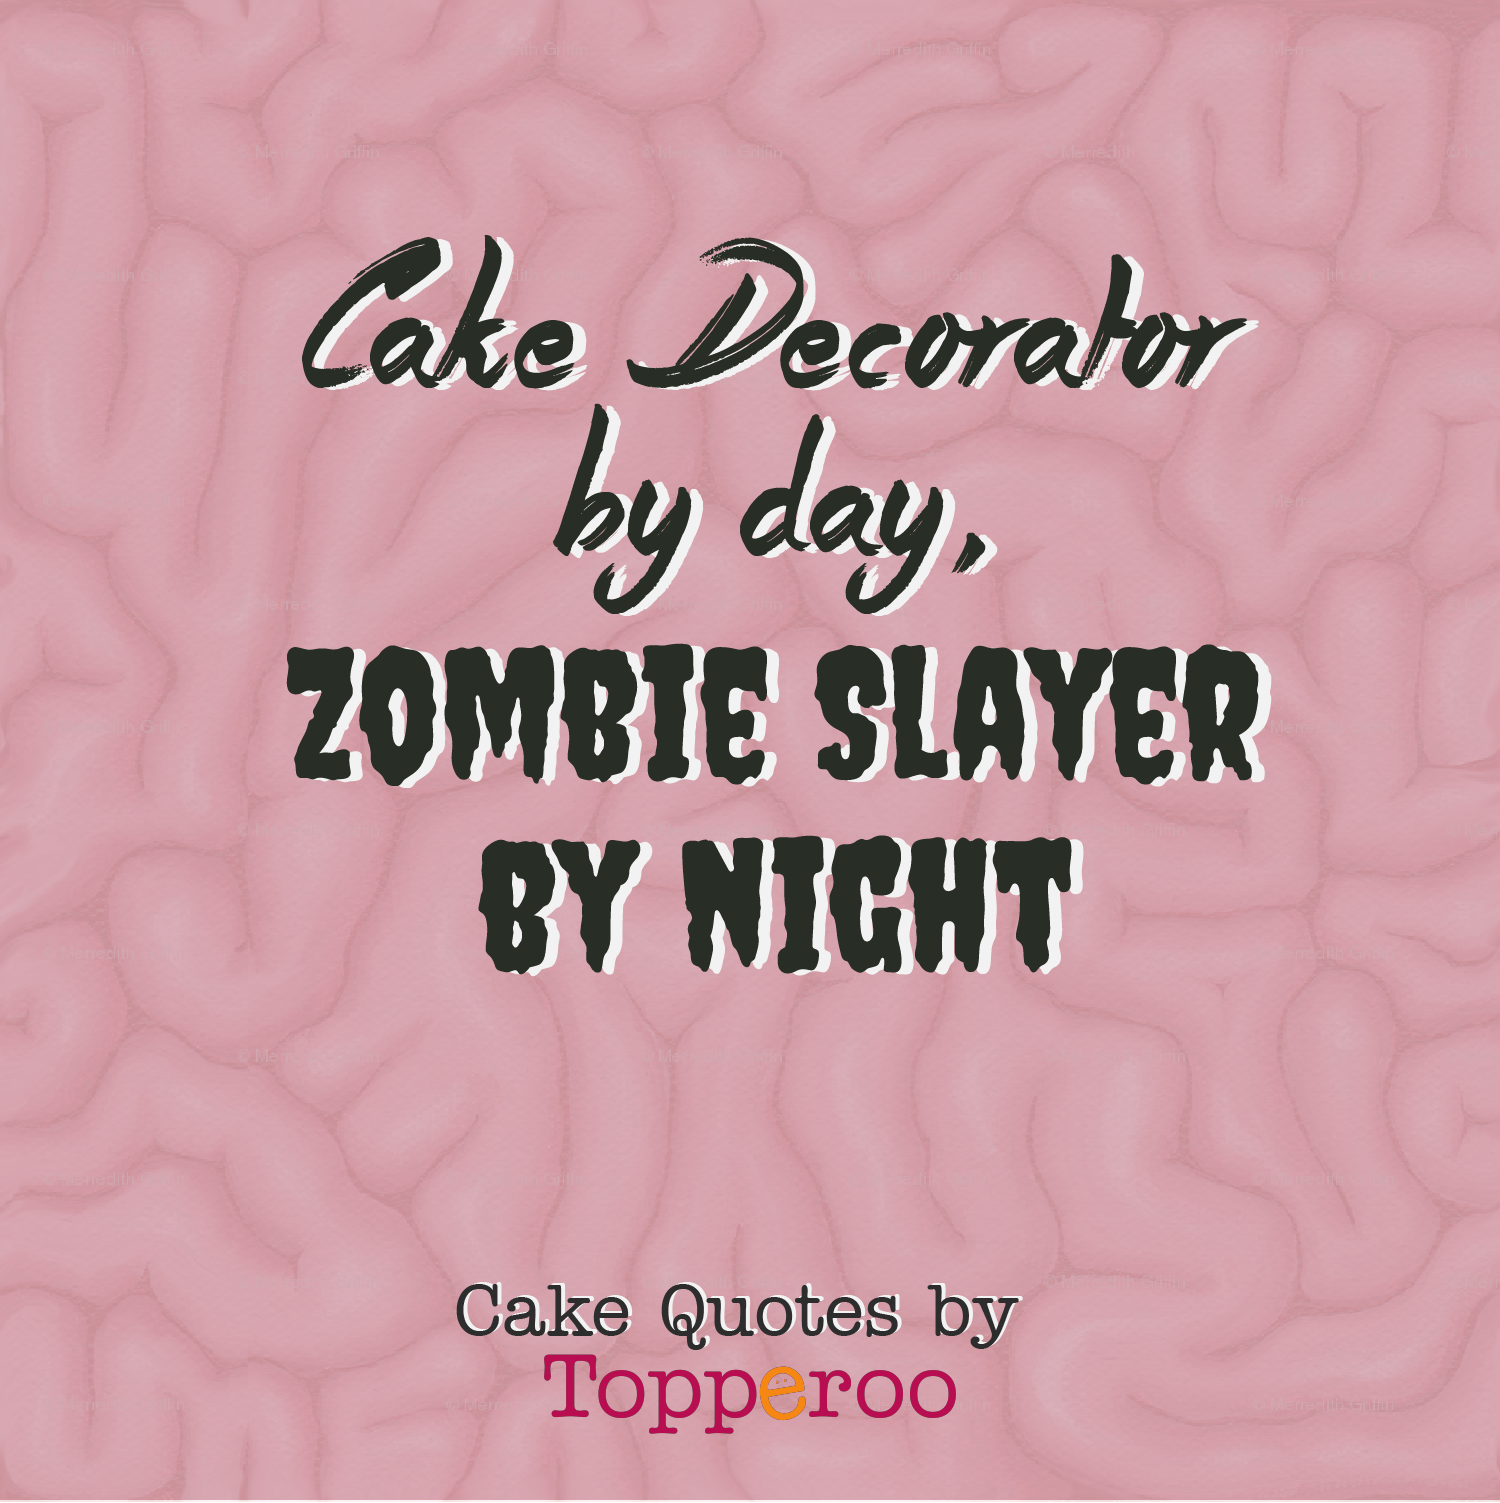 Cake Decorator by Day, Zombie Slayer by night   Cake Quotes